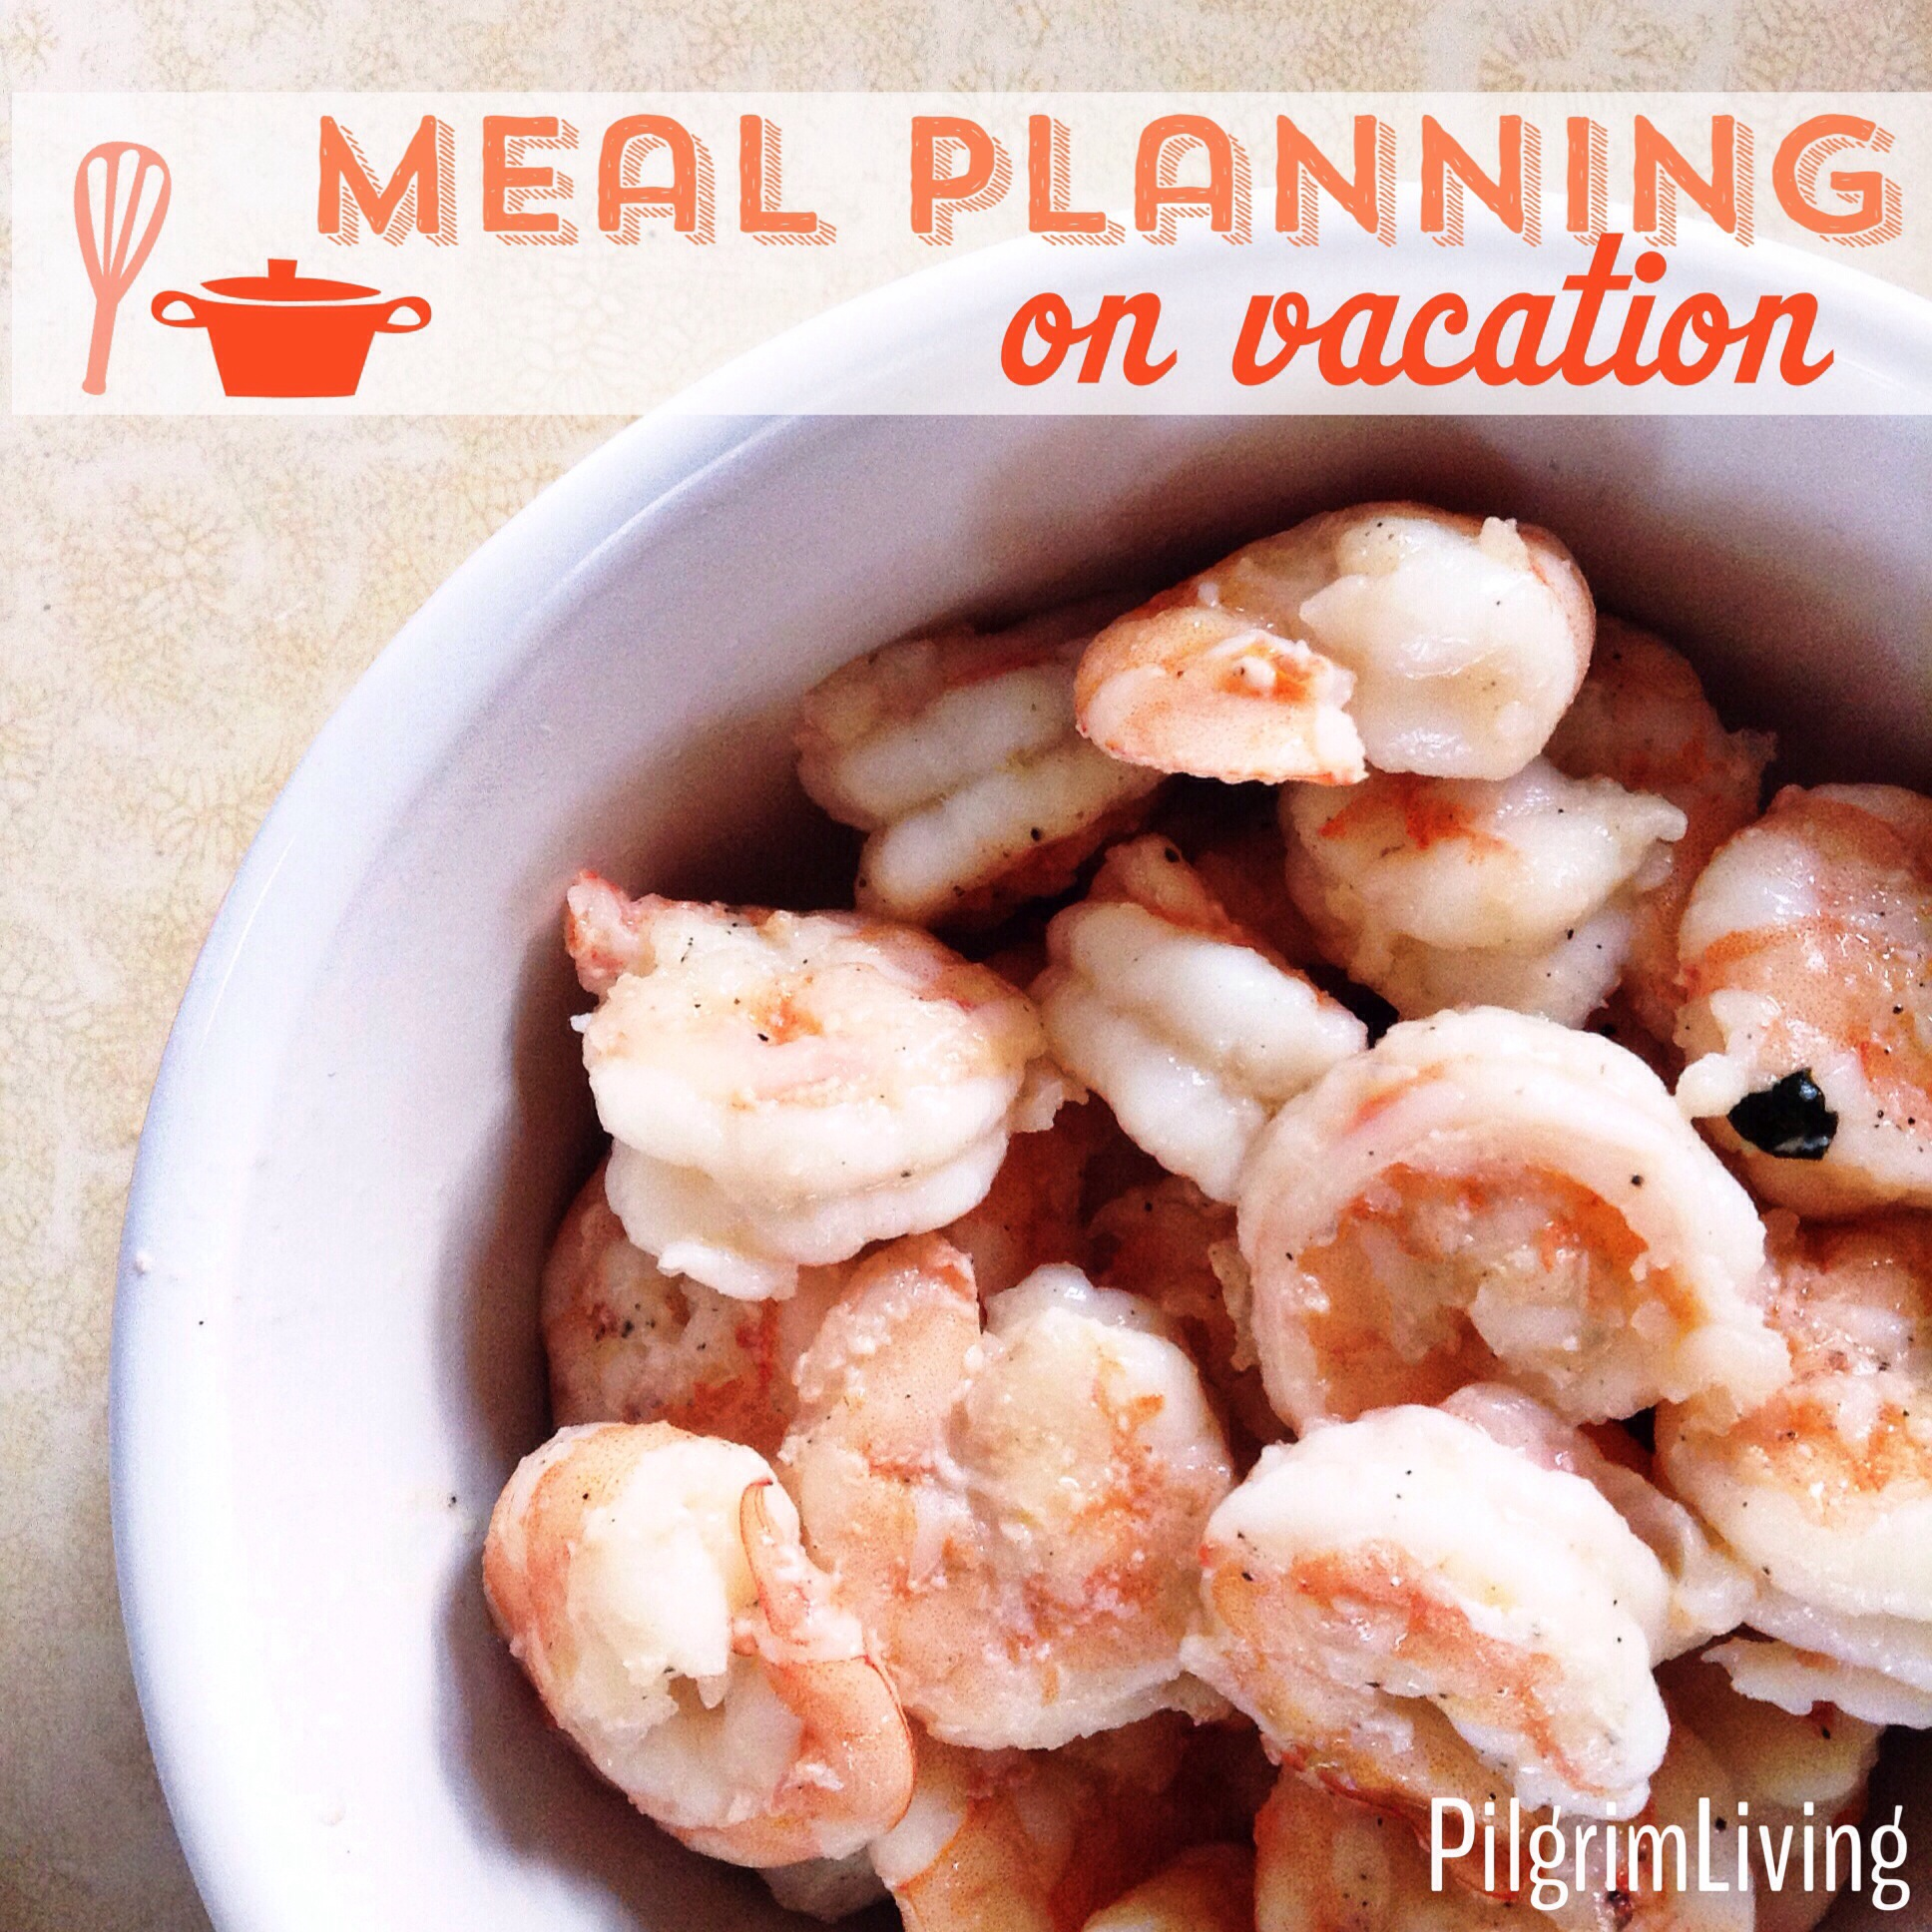 Meal Planning On Vacation